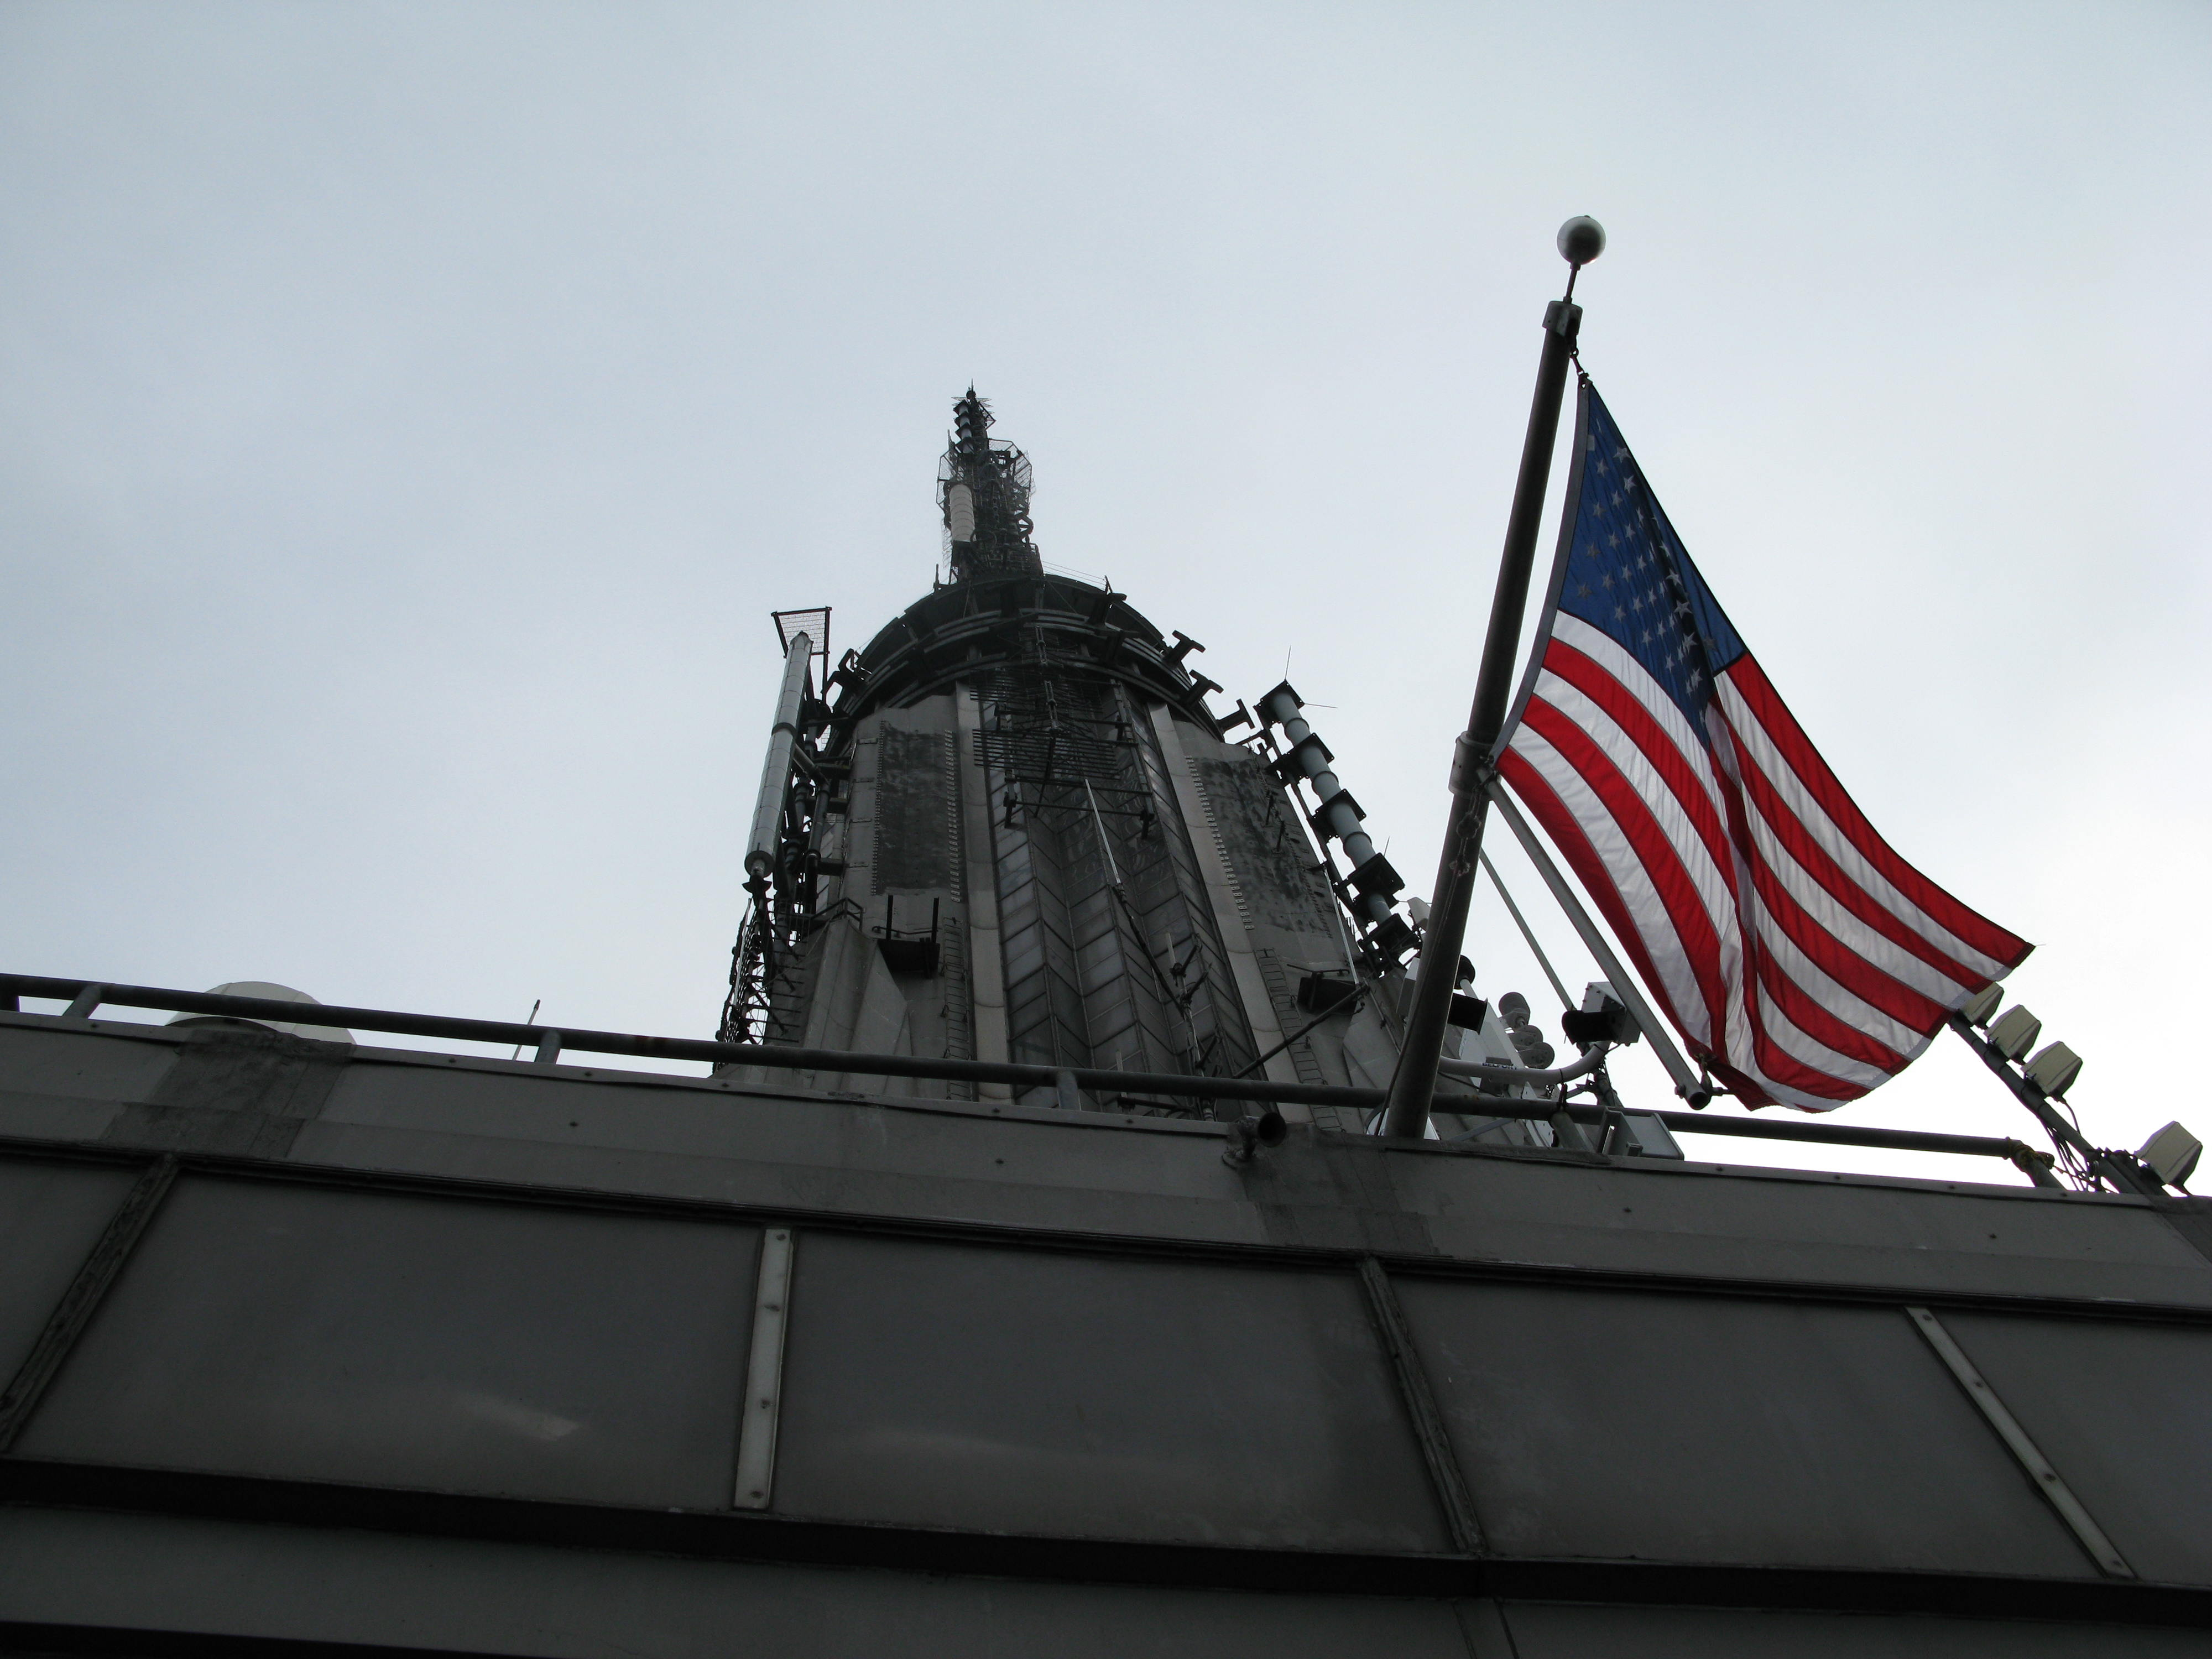 The Mast at the Empire State Building